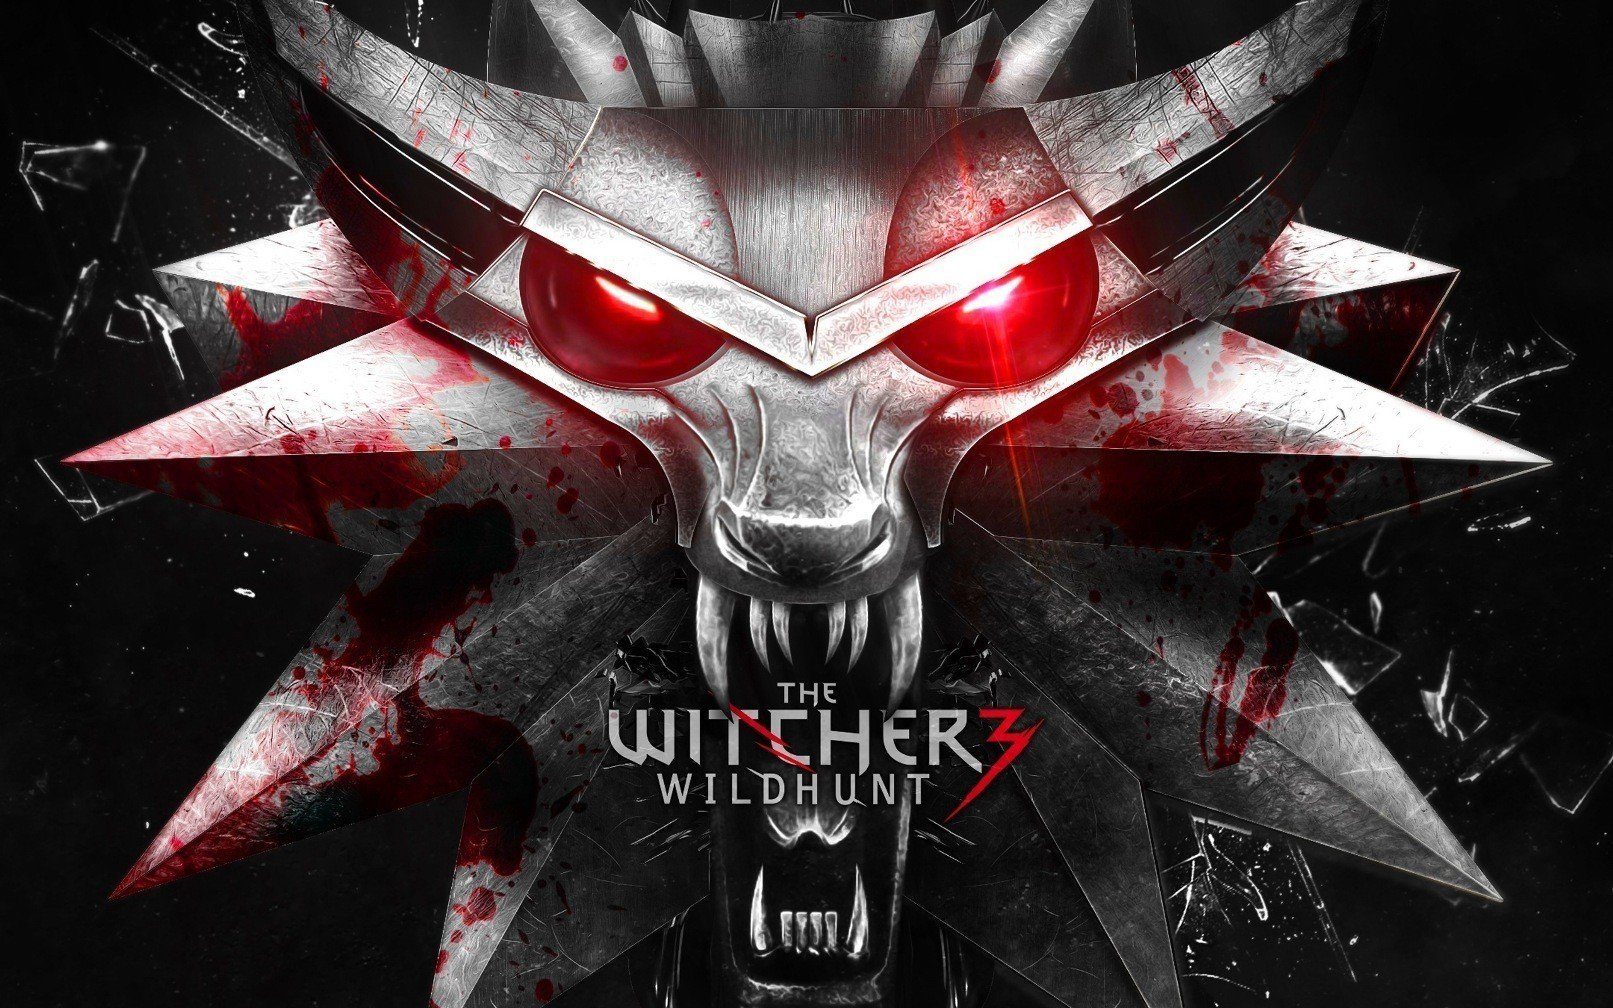 the_witcher_3_wild_hunt-silver-wolf-wallpaper-2560x1600